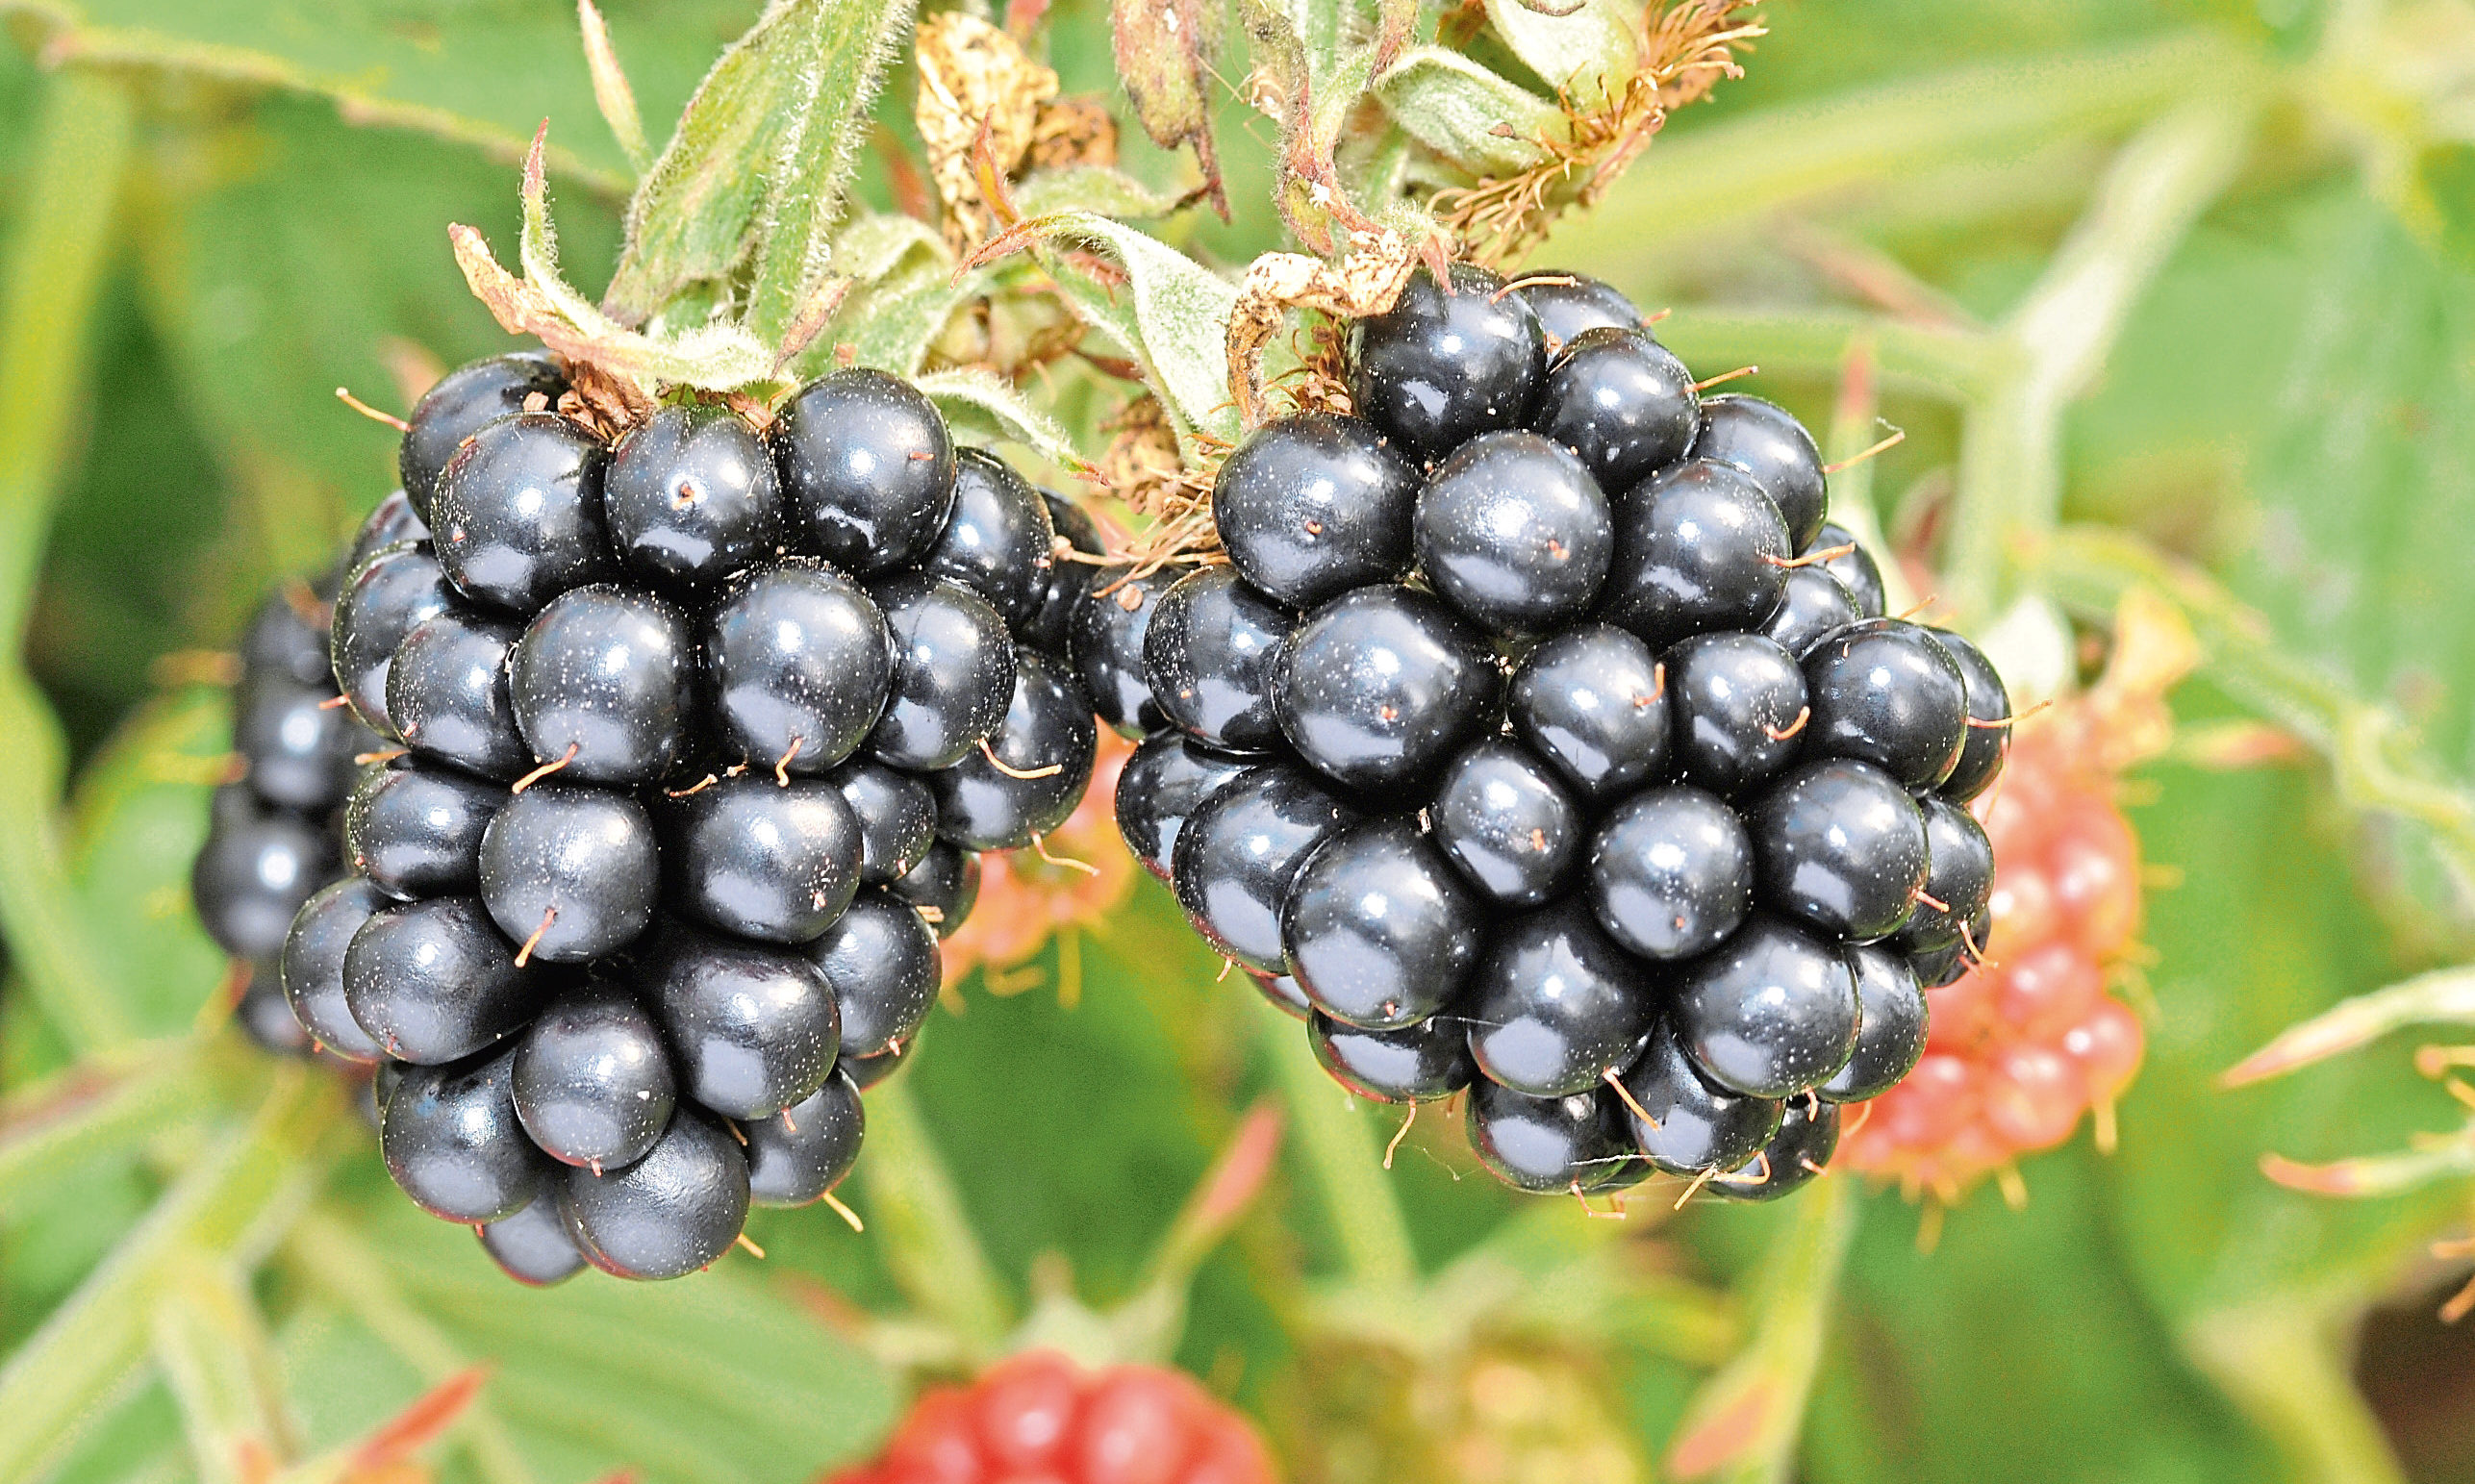 A picture of Blackberries from the James Hutton Institute.